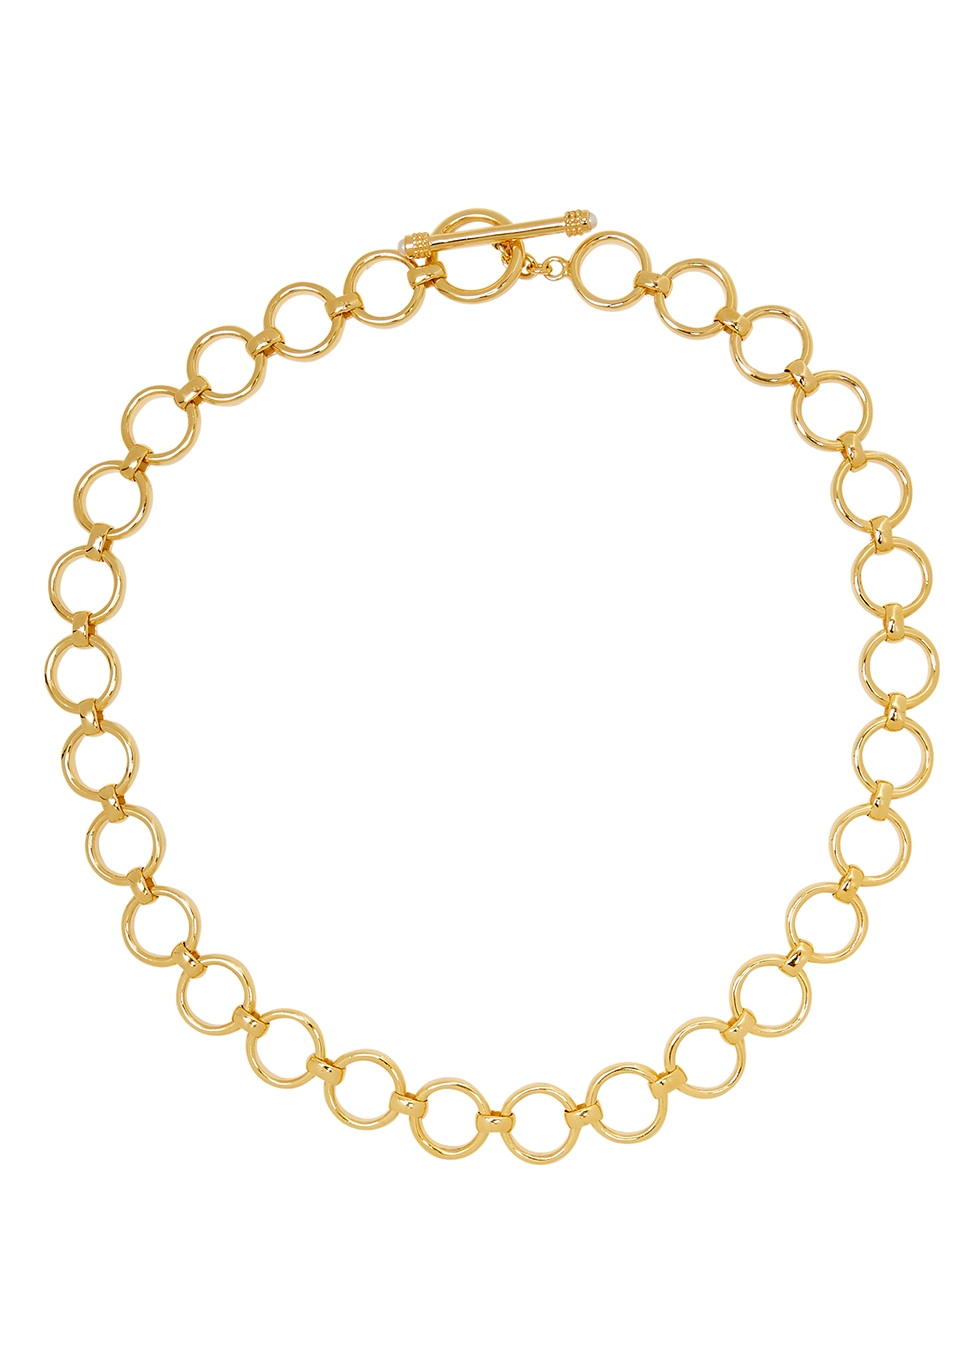 Bea 18kt gold-plated necklace